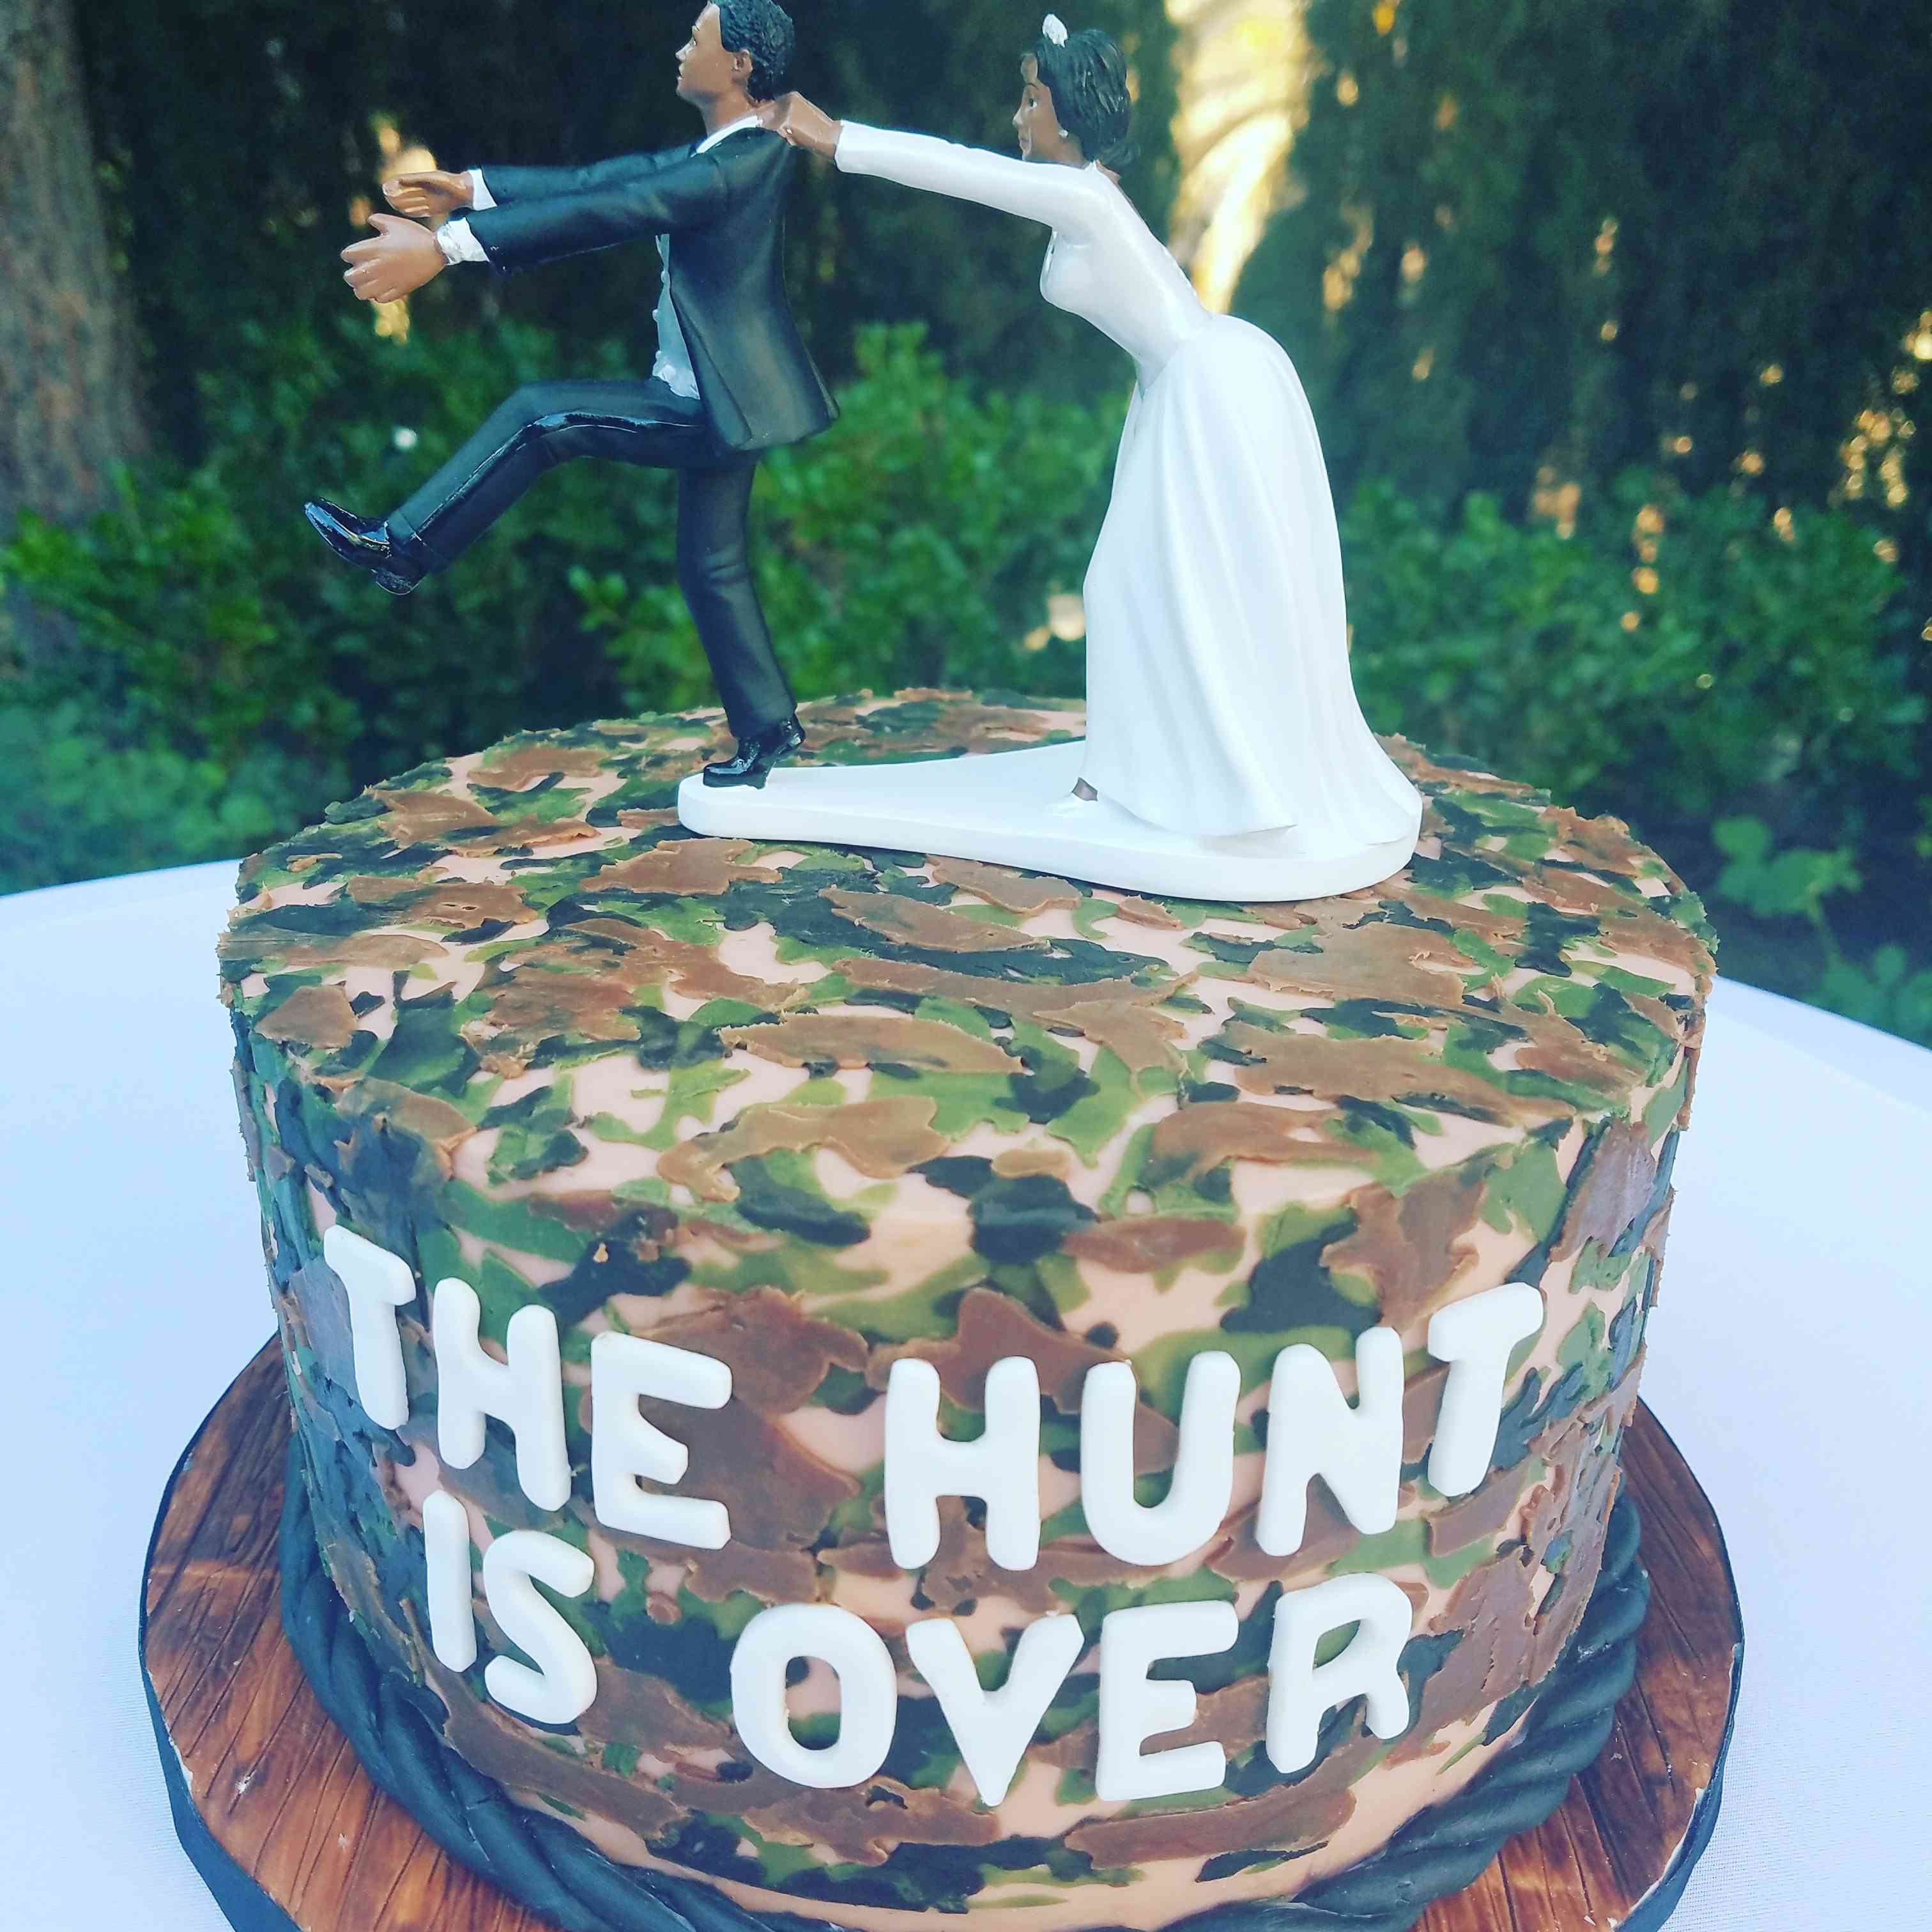 Grooms Wedding Cake Ideas: What Is A Groom's Cake? 8 Theme Ideas For Your Wedding